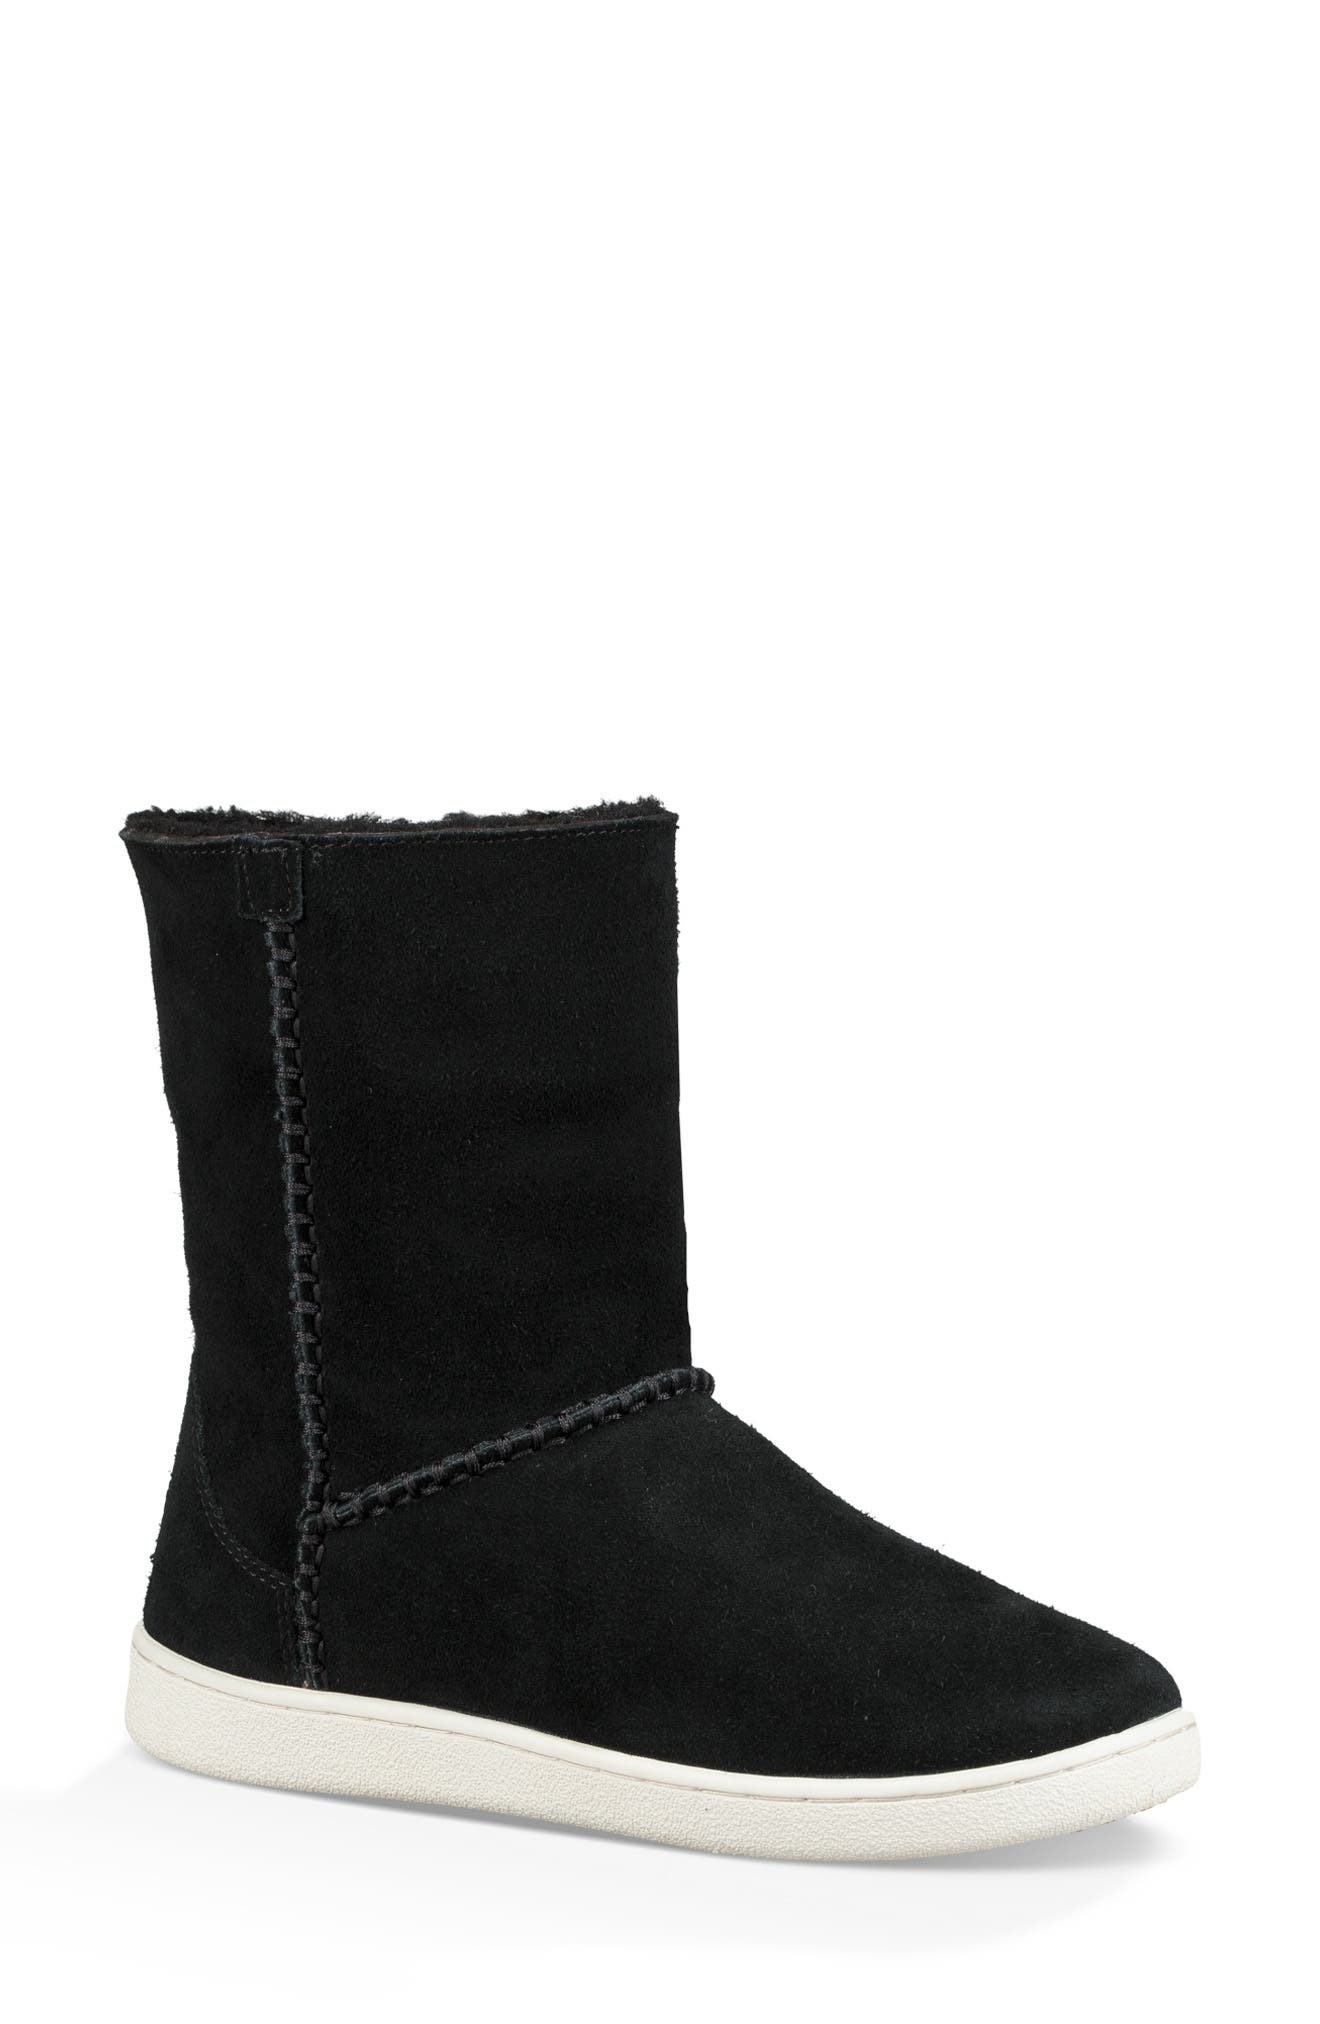 UGG<SUP>®</SUP>, Mika Classic Genuine Shearling Sneaker, Alternate thumbnail 2, color, BLACK